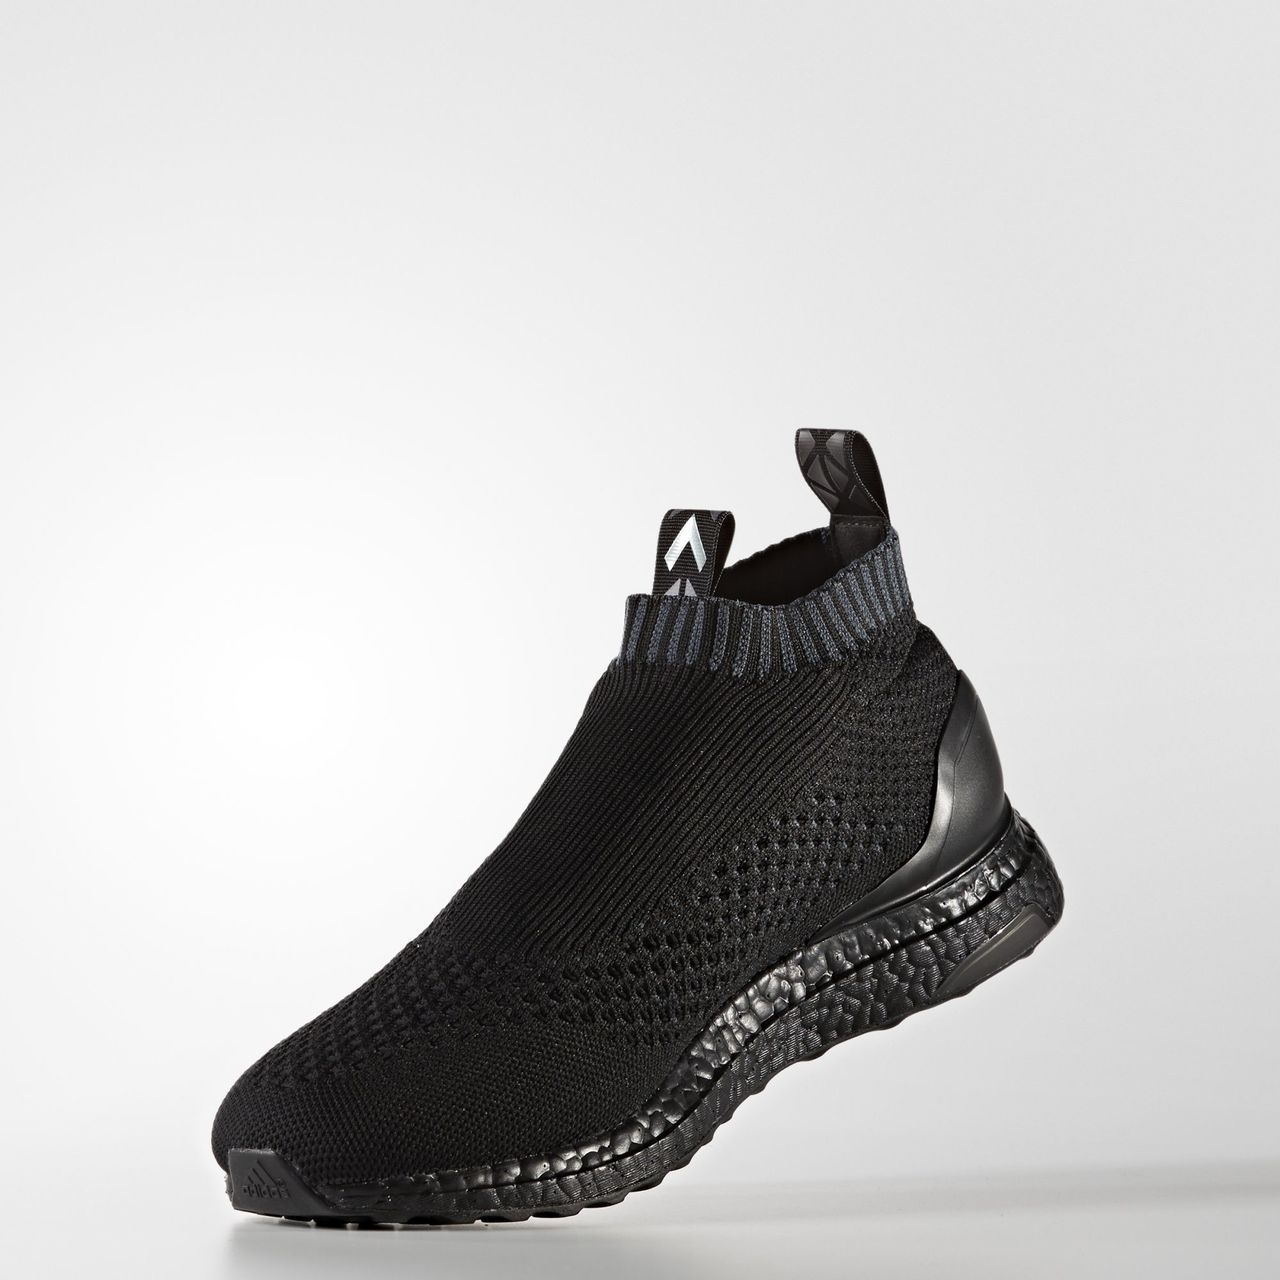 588b3eeb9 ... Click to enlarge image  adidas ace 16 purecontrol ultra boost shoes chequered black core black c.jpg  ...